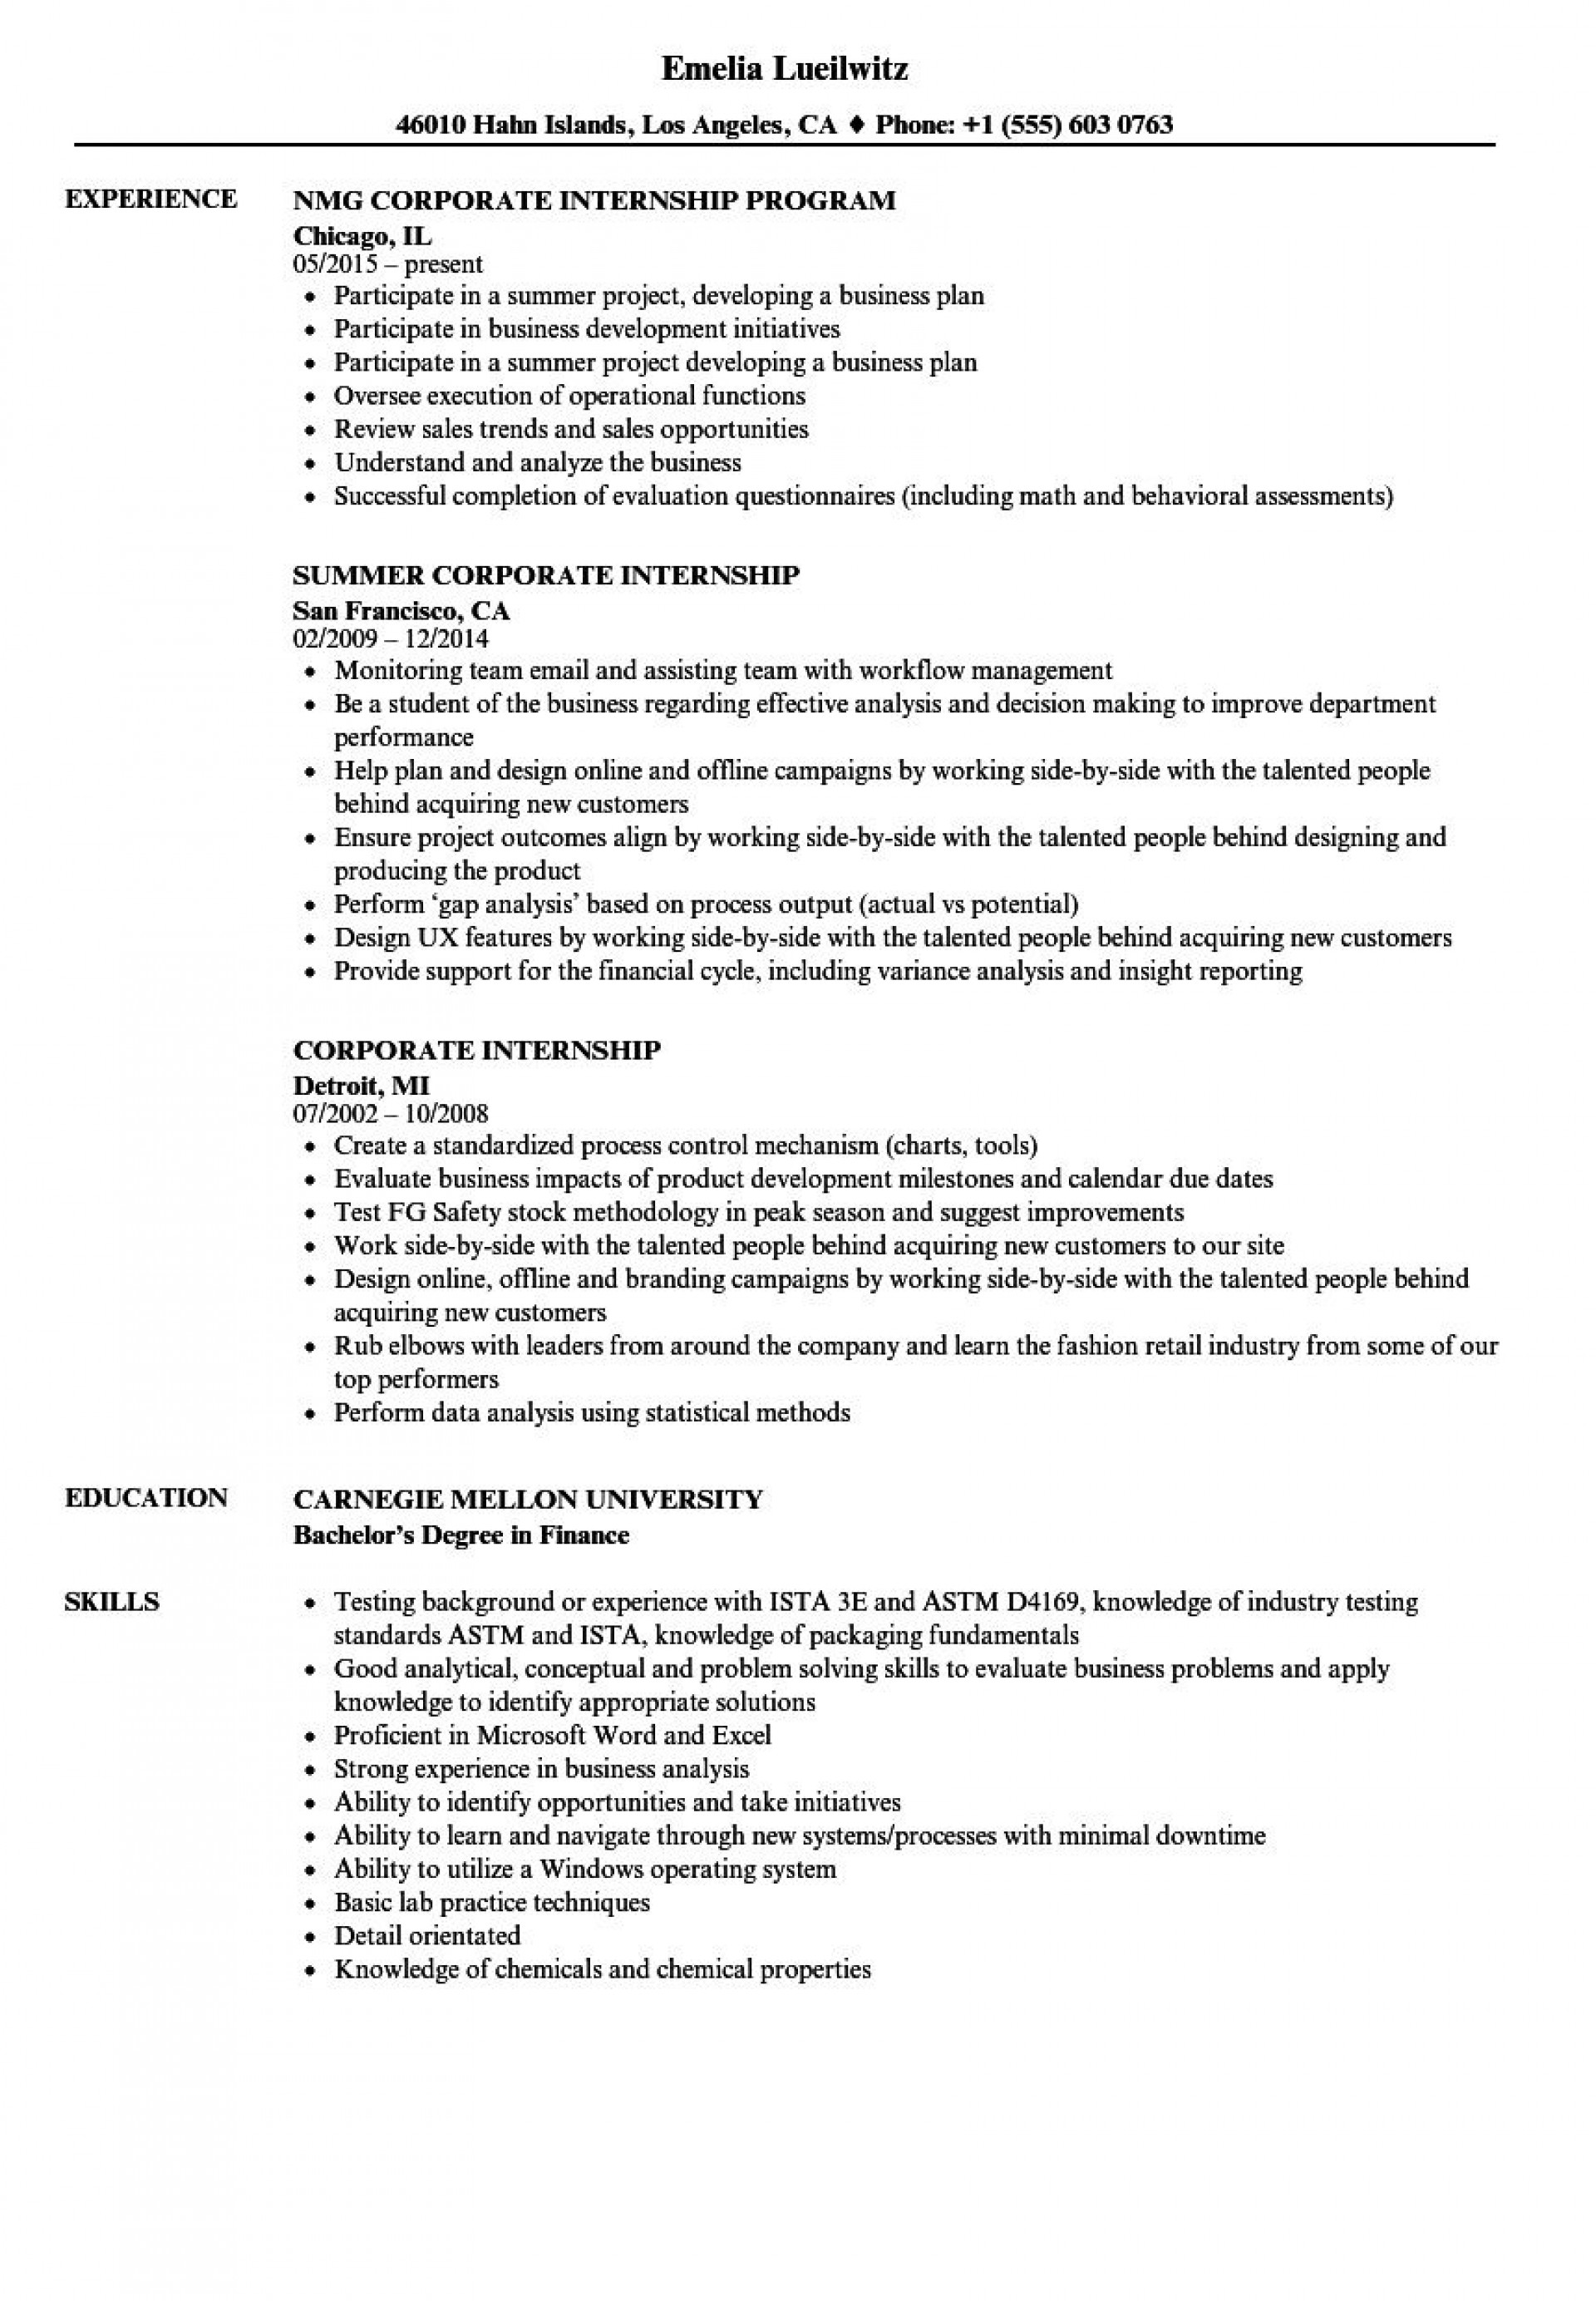 002 Fearsome Resume Template For Intern High Resolution  Interns Internship In Engineering Law Example1920